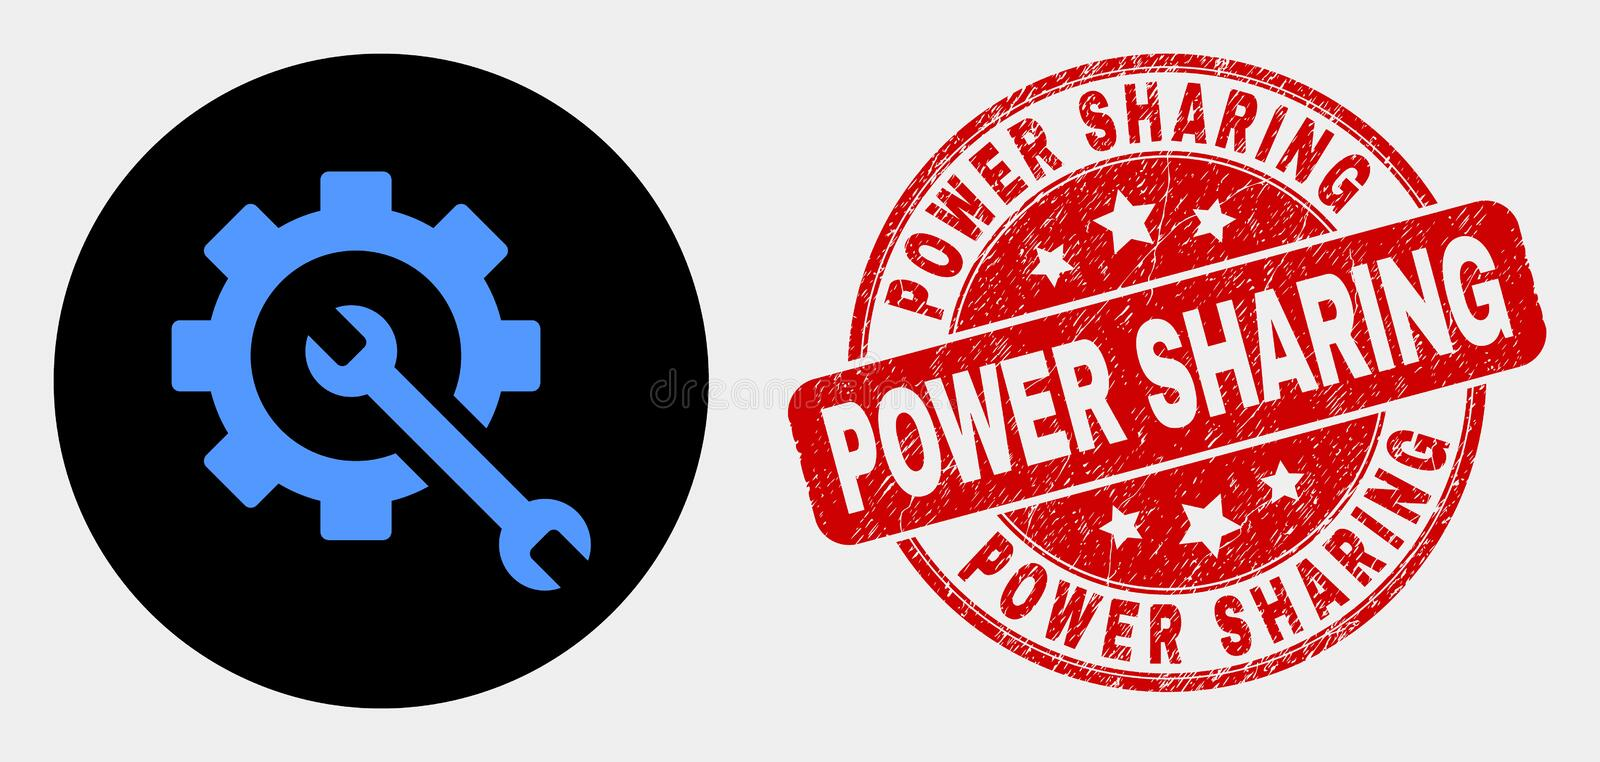 Vector Service Tools Icon and Scratched Power Sharing Watermark. Rounded service tools icon and Power Sharing seal. Red rounded scratched seal with Power Sharing royalty free illustration